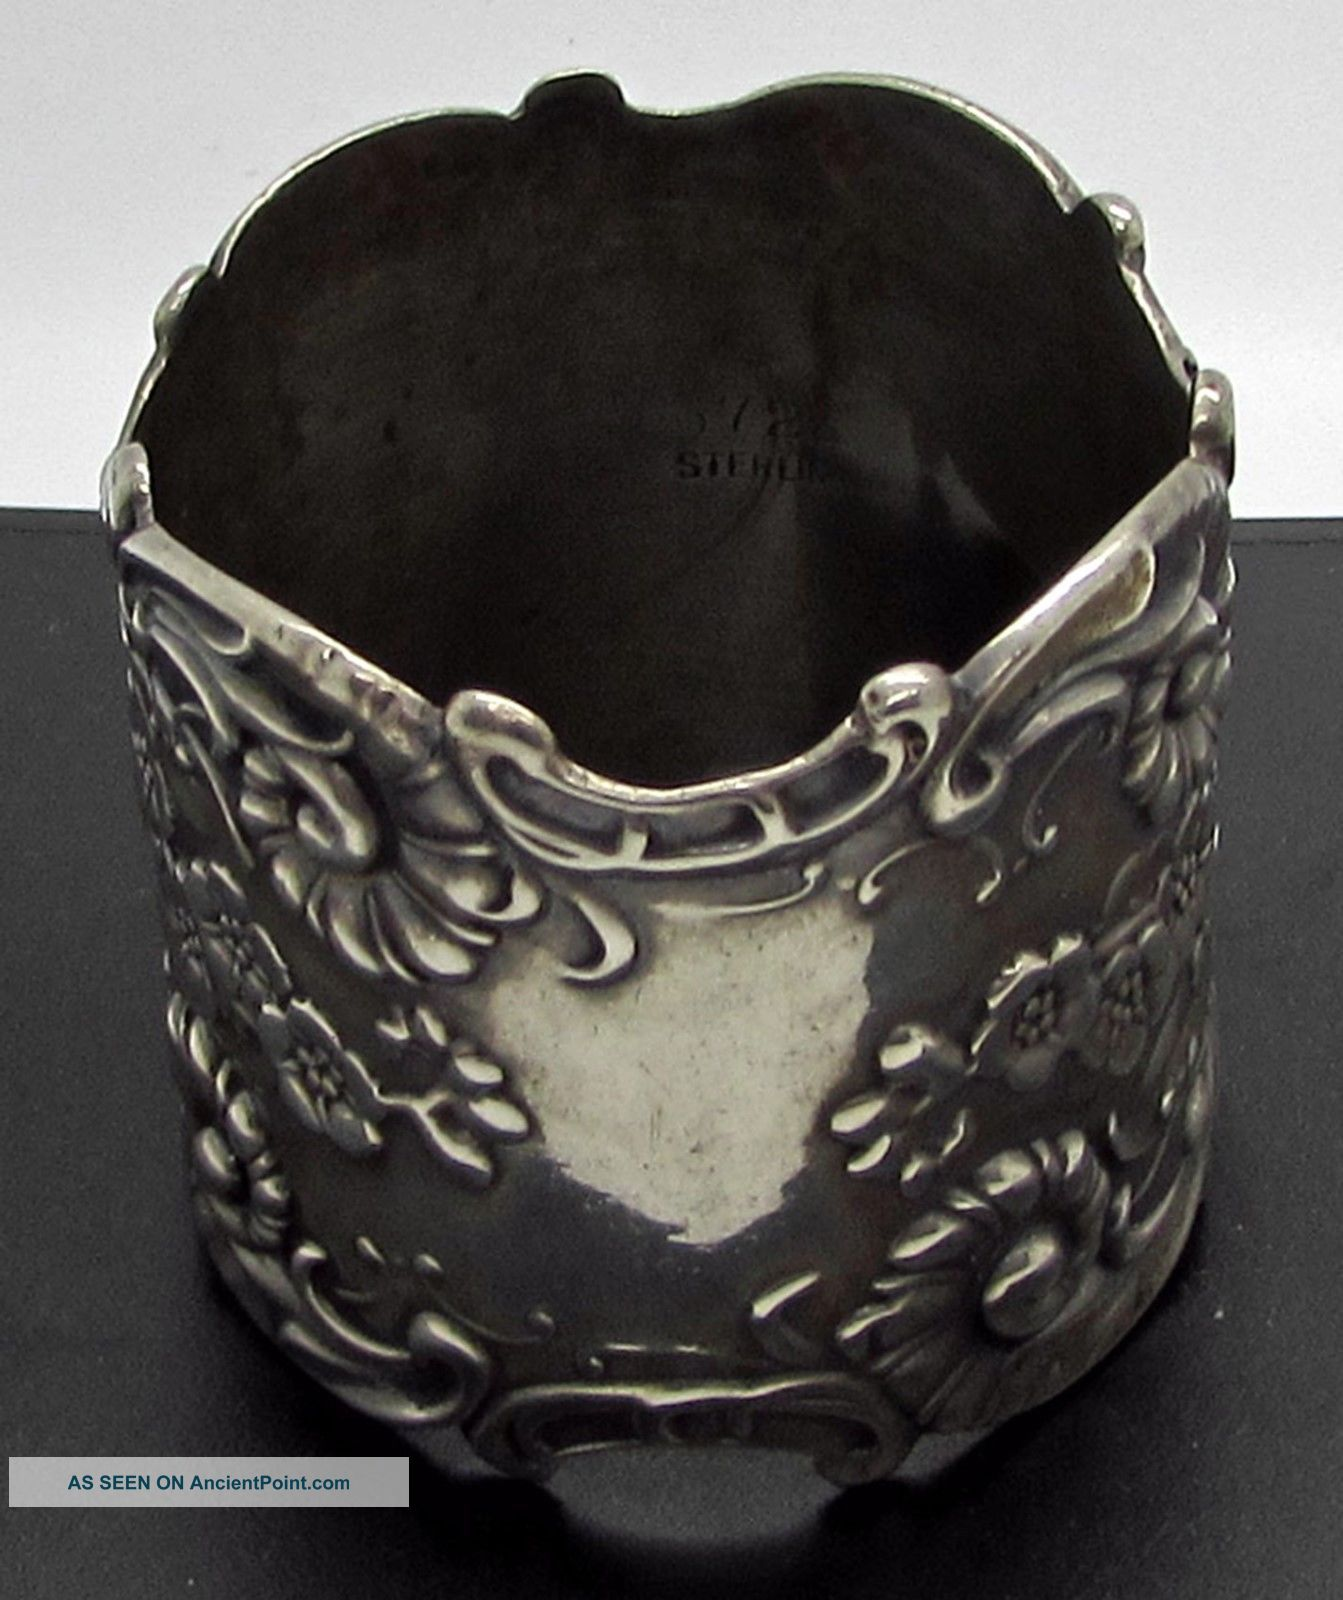 Antique Art Nouveau Sterling Silver Napkin Ring Repousse Flowers Ornate Napkin Rings & Clips photo